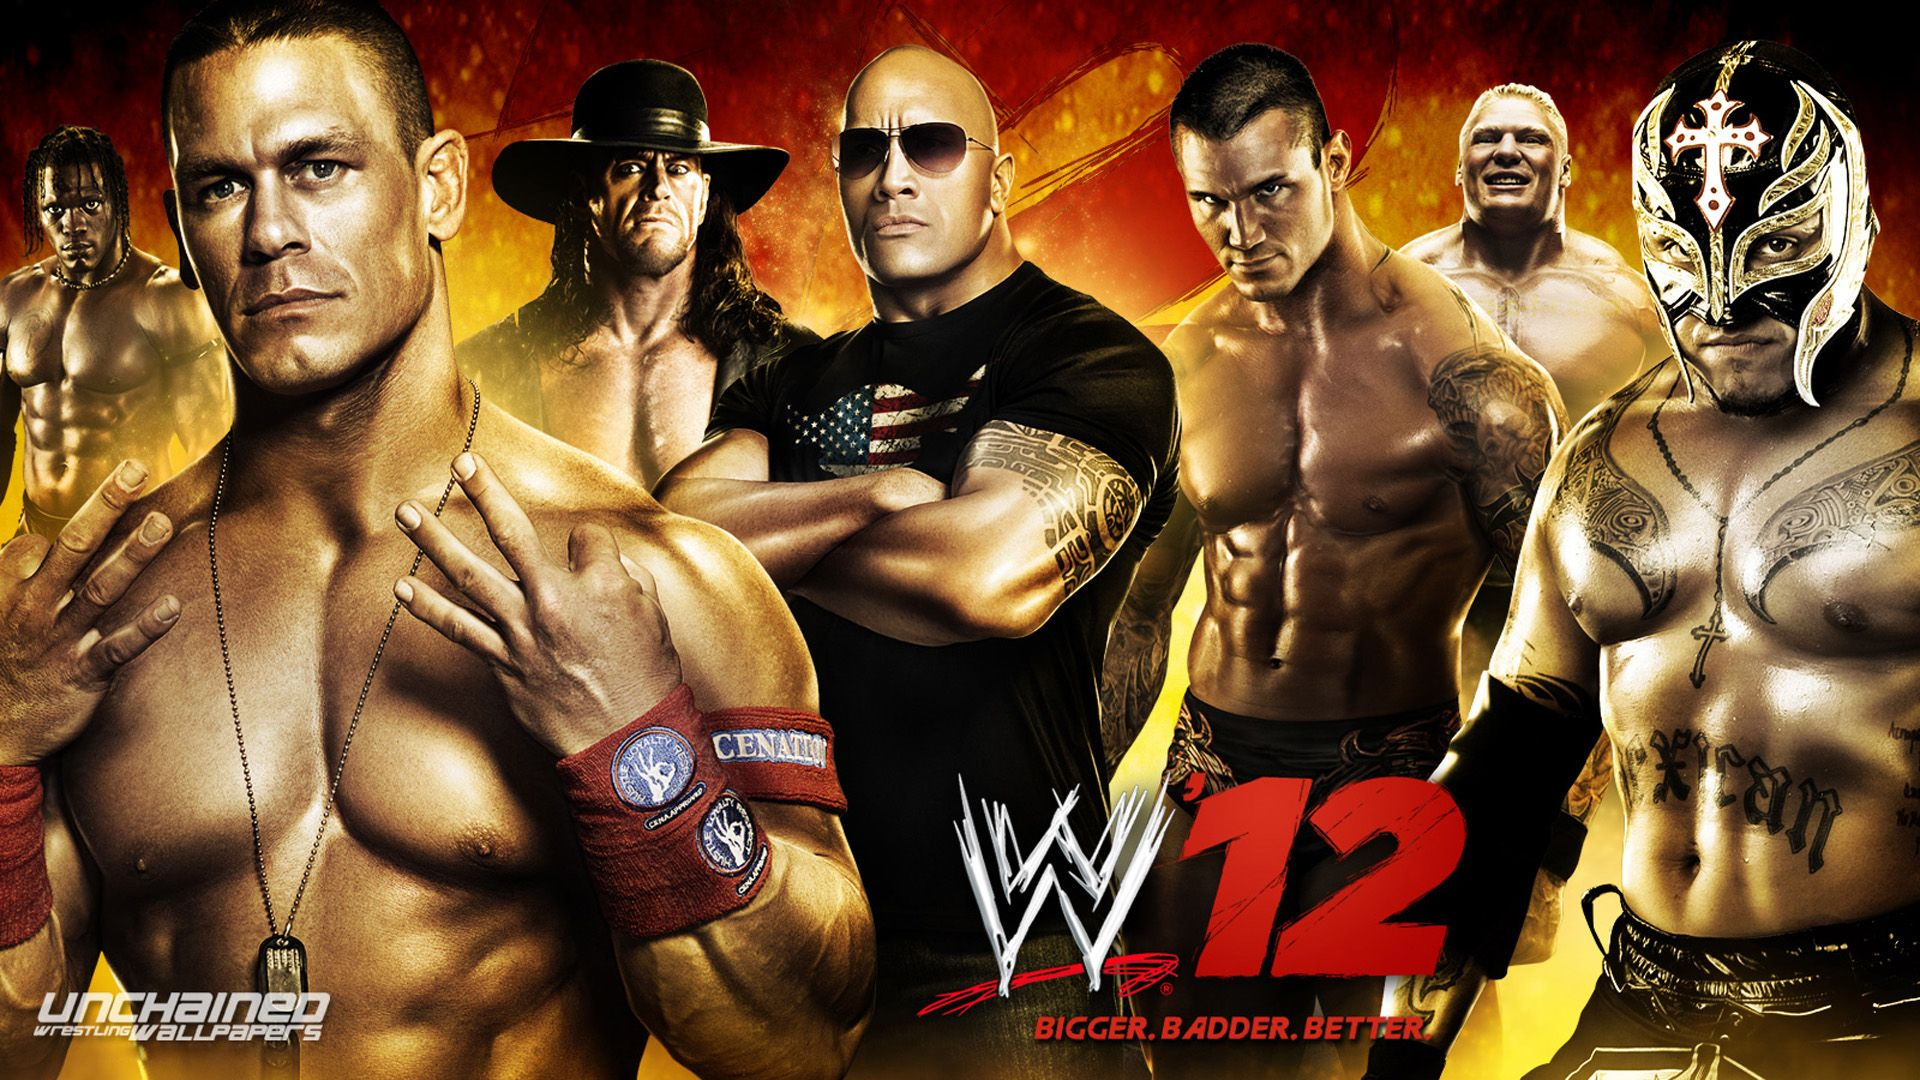 Wwe wallpaper archives hd wallpapers k wallpaper download for 1920 wwe wallpaper archives hd wallpapers k wallpaper download for 19201080 wwe wallpapers downloads voltagebd Images